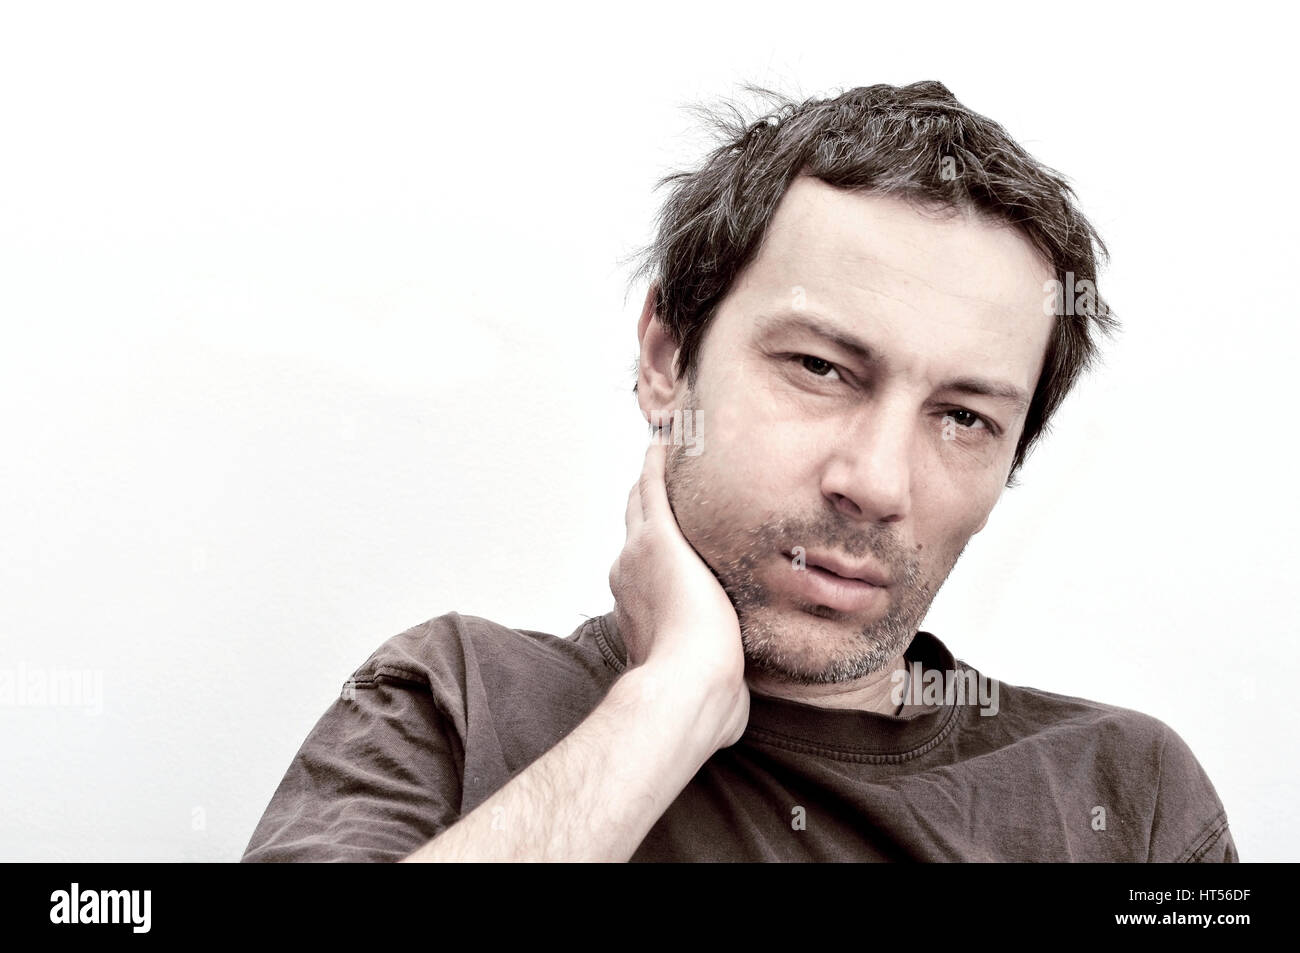 Young man suffering from toothache, teeth pain, swelling face - Stock Image